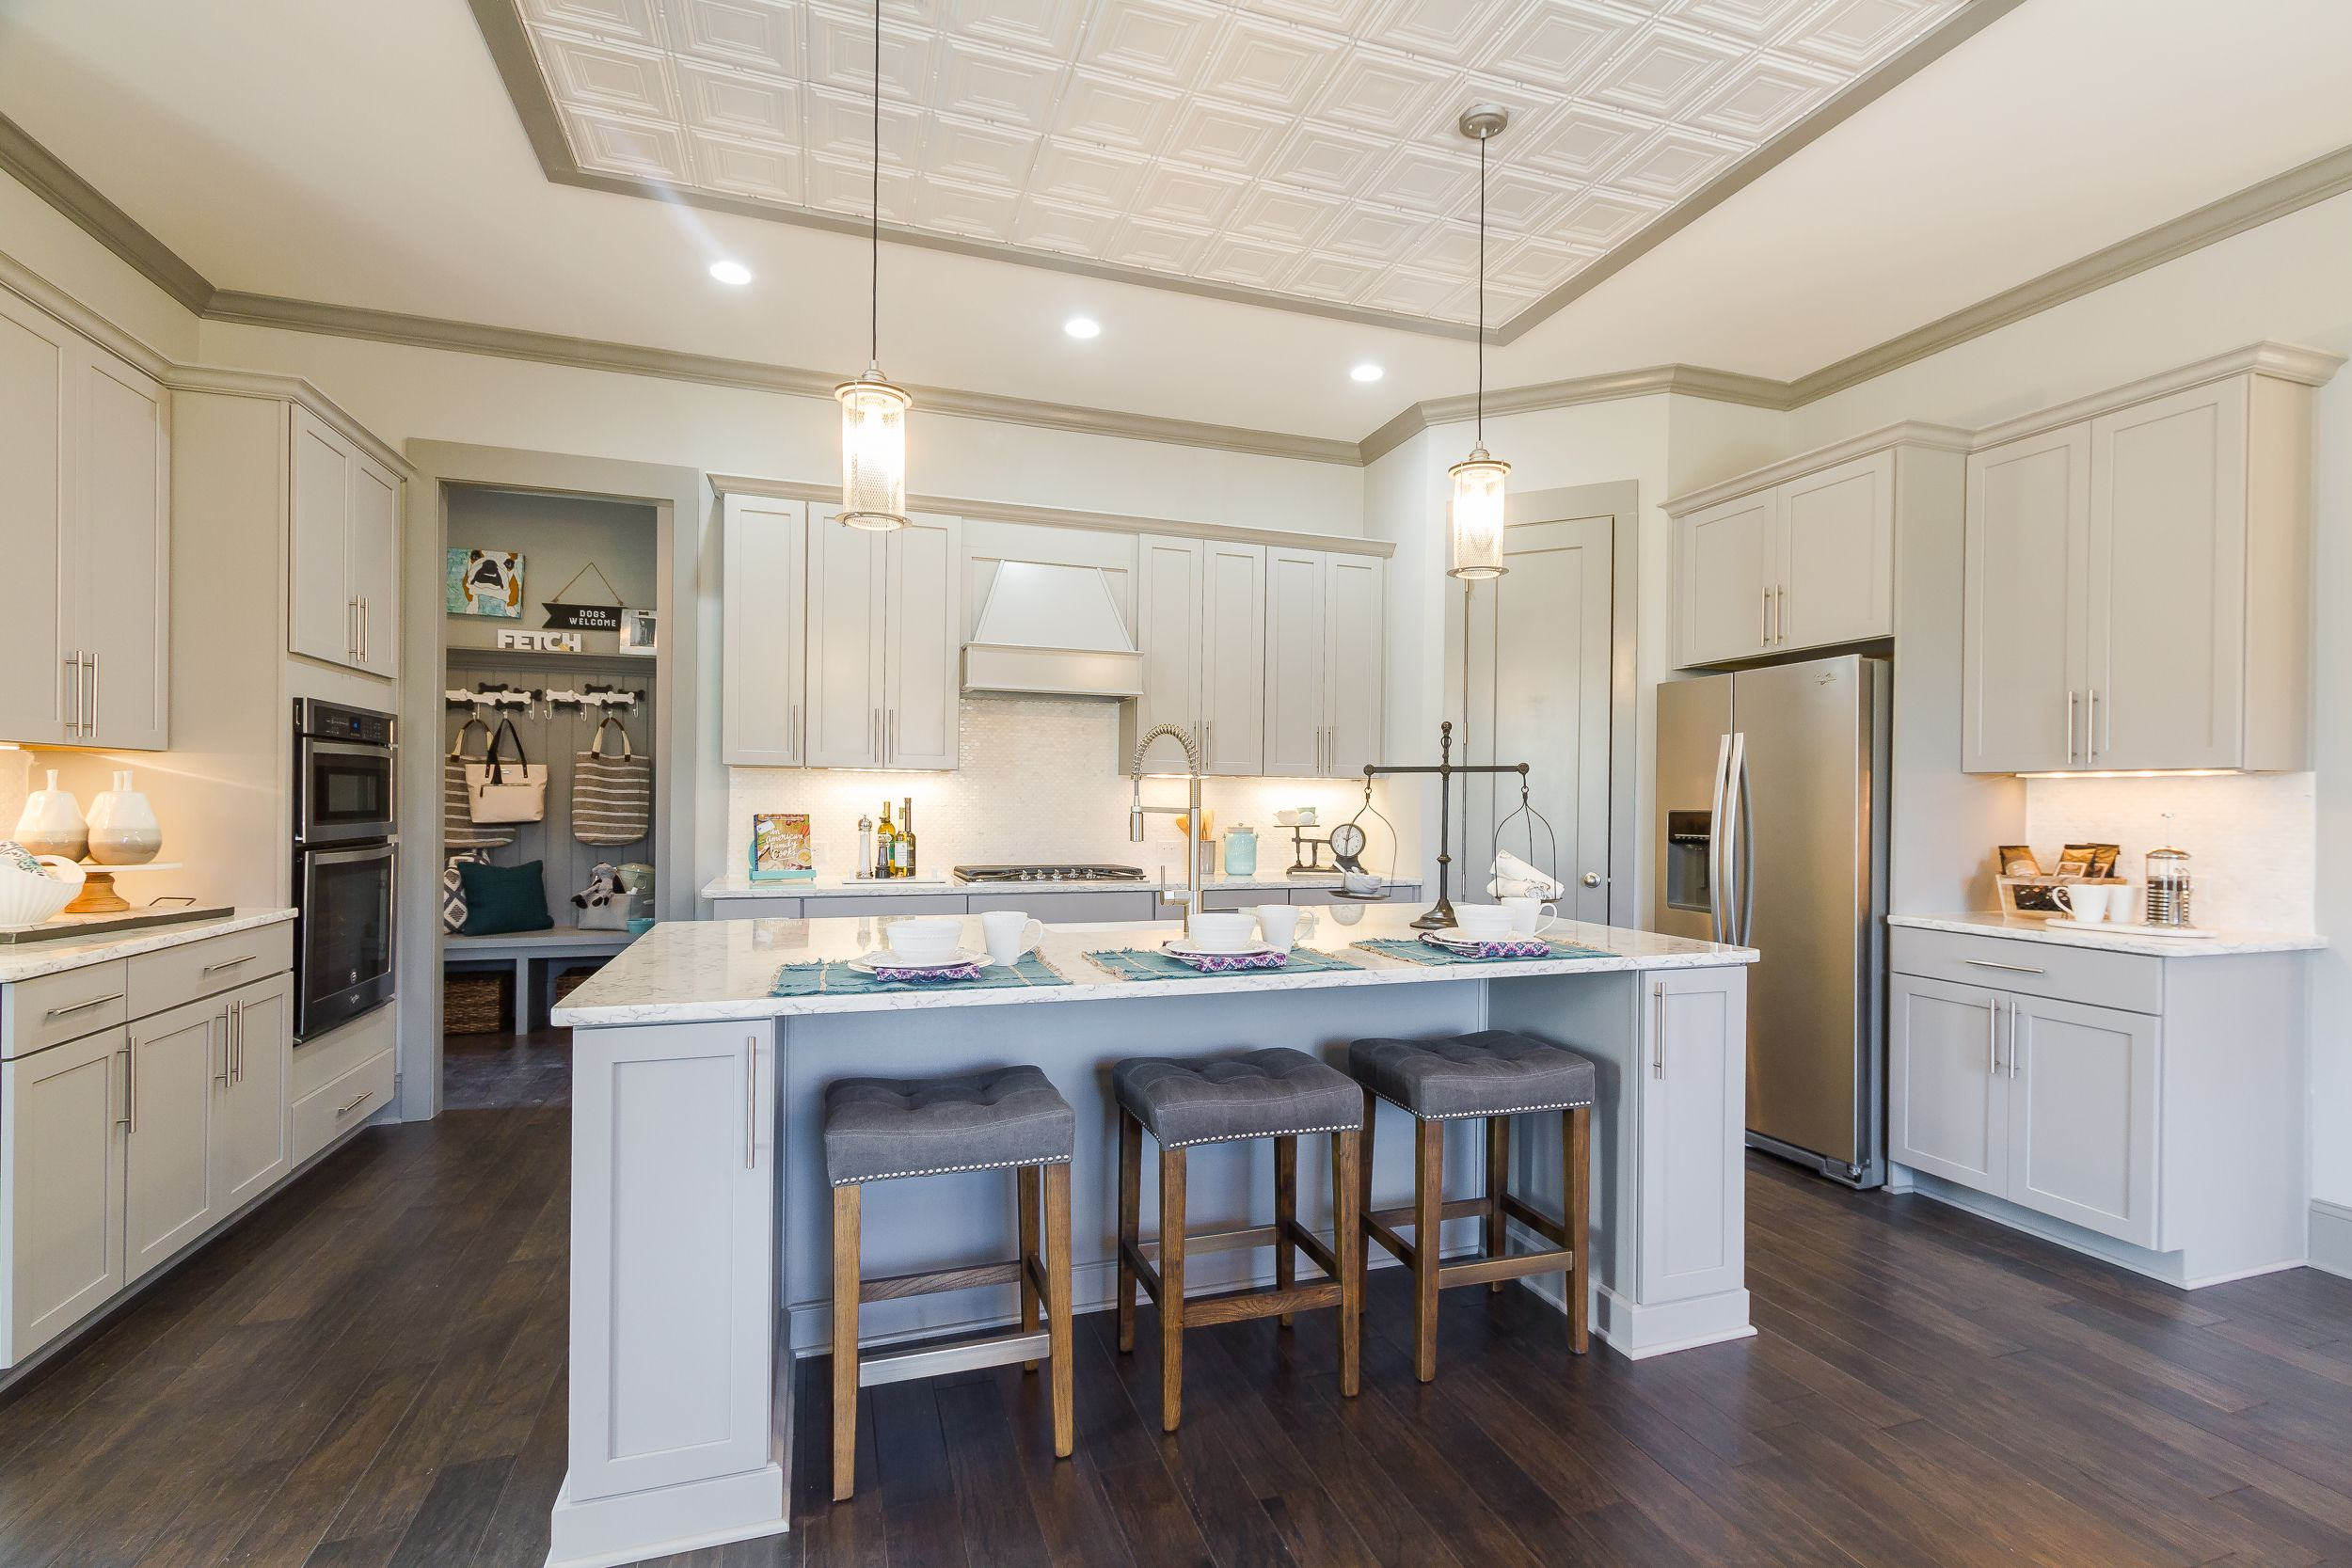 The Barnesdale At Inwood Kitchen Inspirations Home New Homes